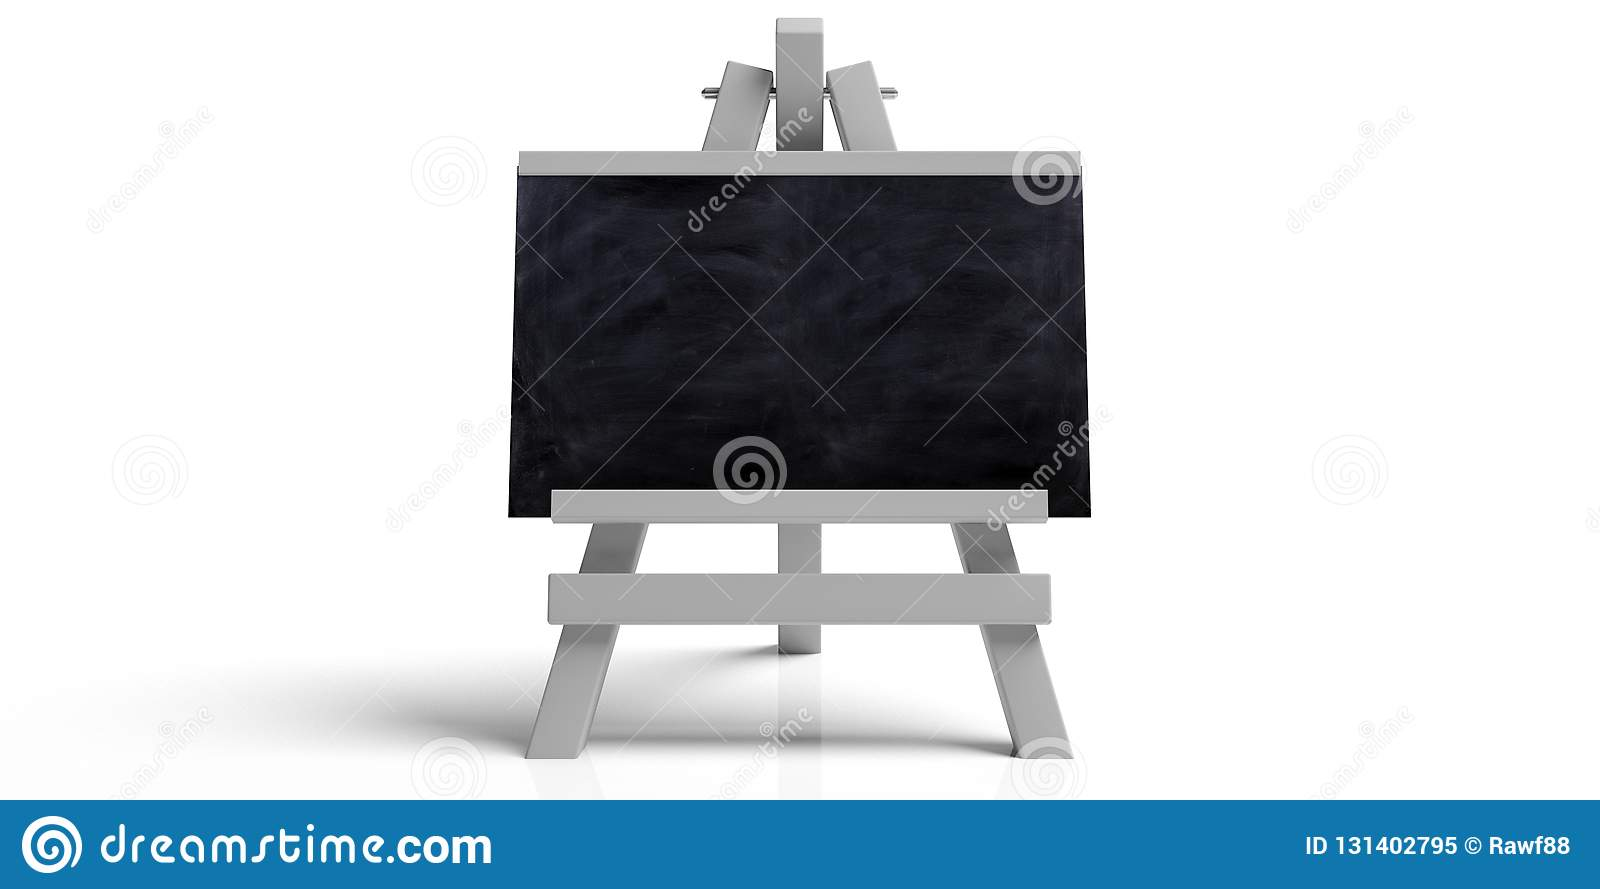 Education concept. Blackboard on white folding wooden easel, isolated against white background with copy space